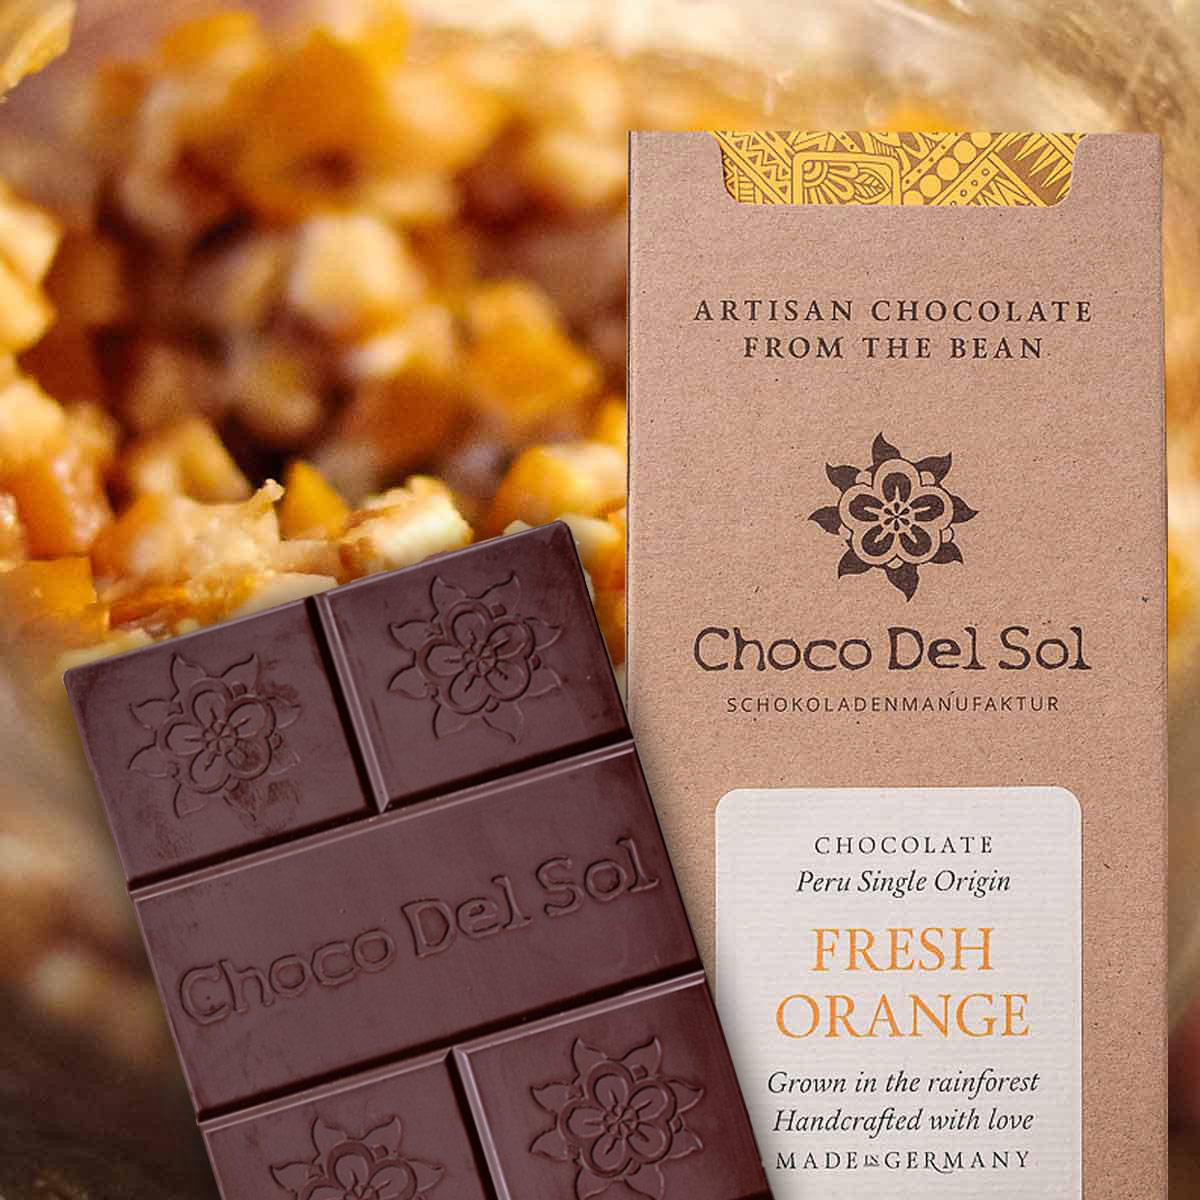 Choco Del Sol organic orange chocolate